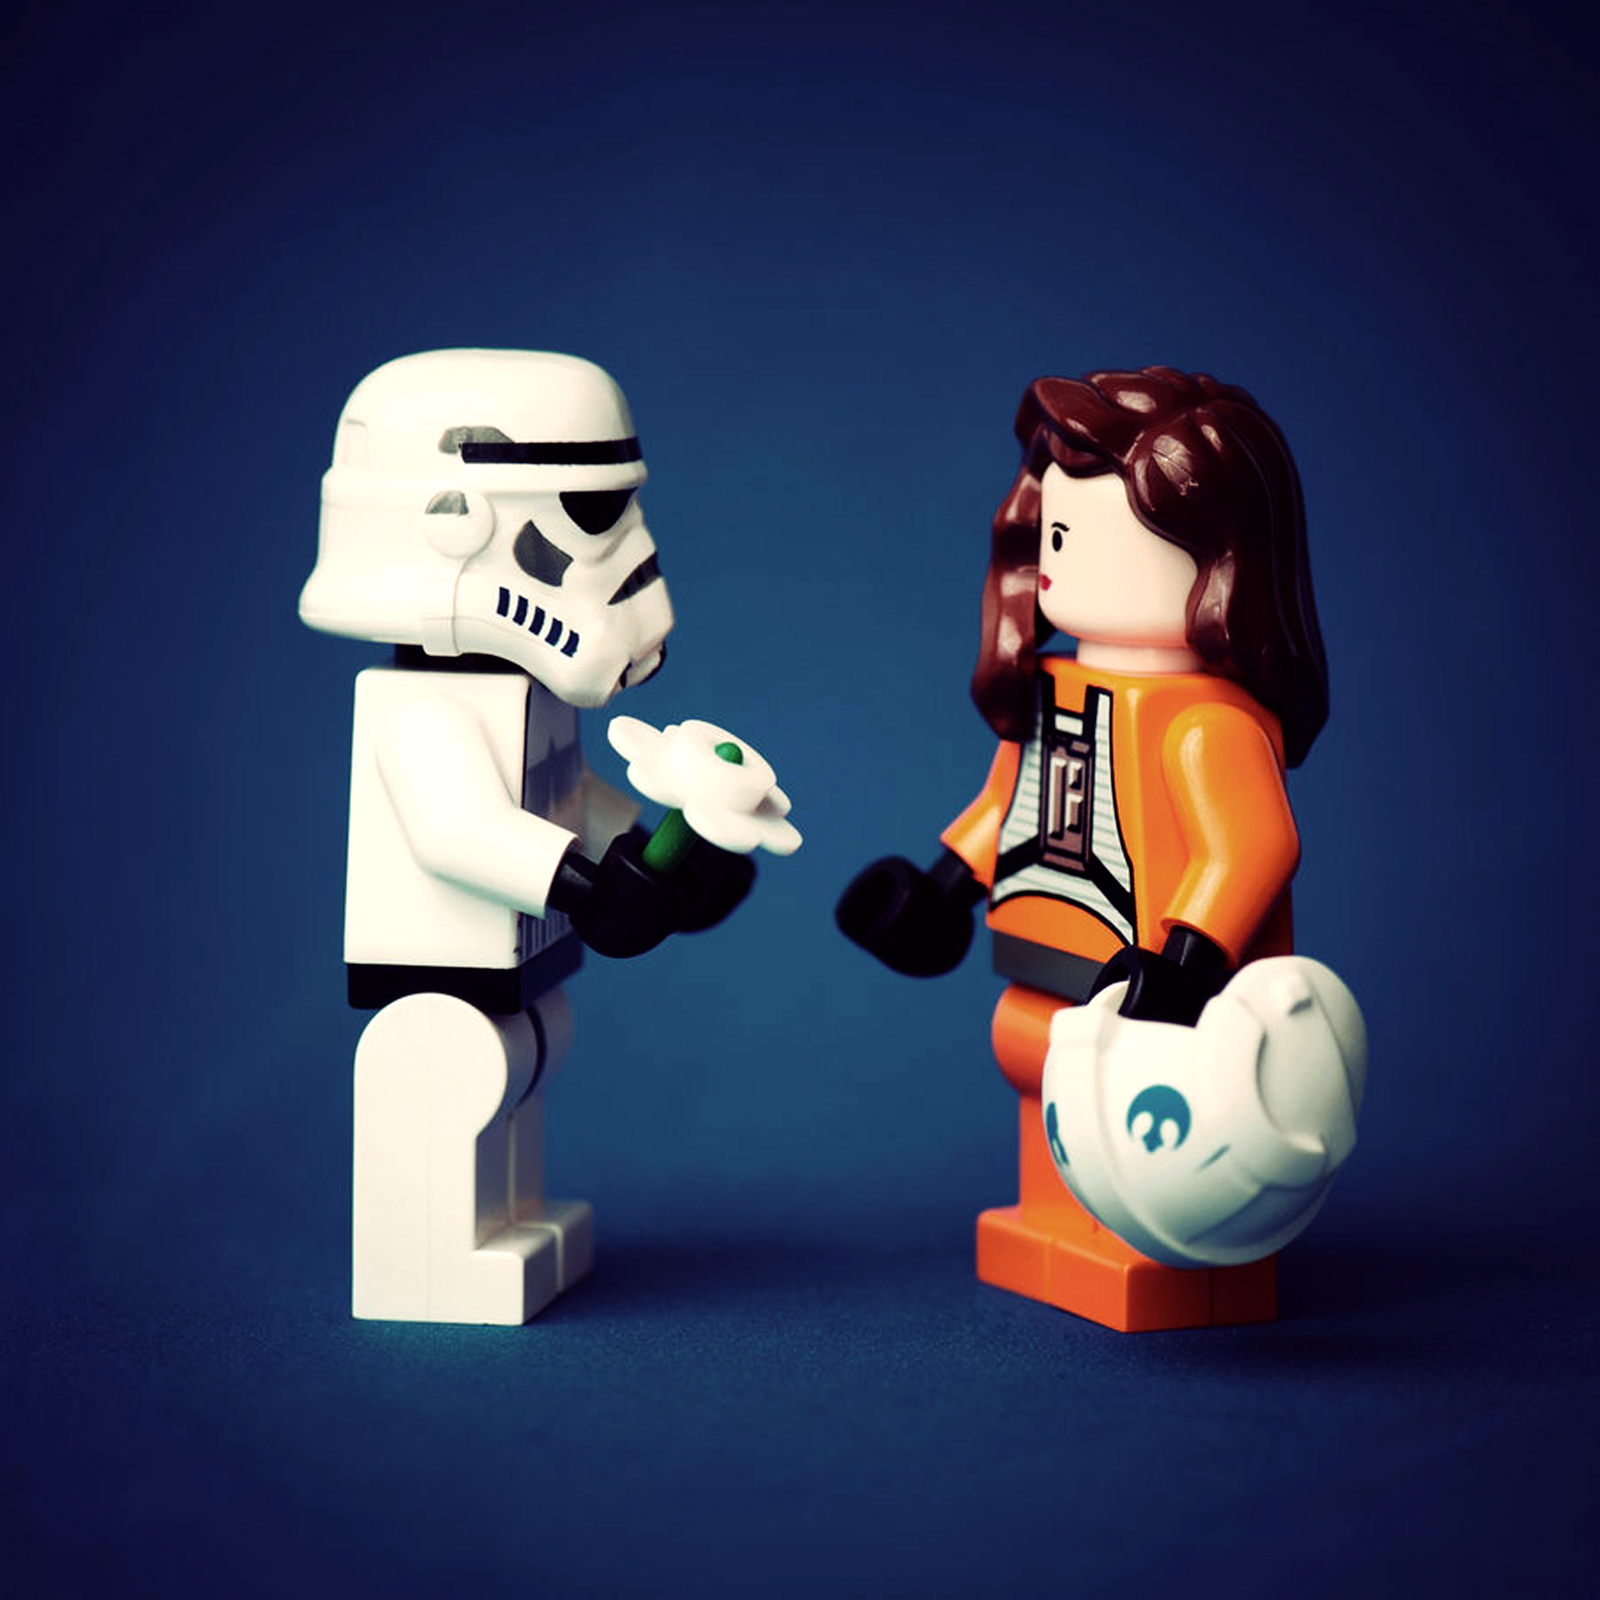 Stormtroopers Star Wars HD Wallpapers Cute Stormtrooper Lego Wallpaper